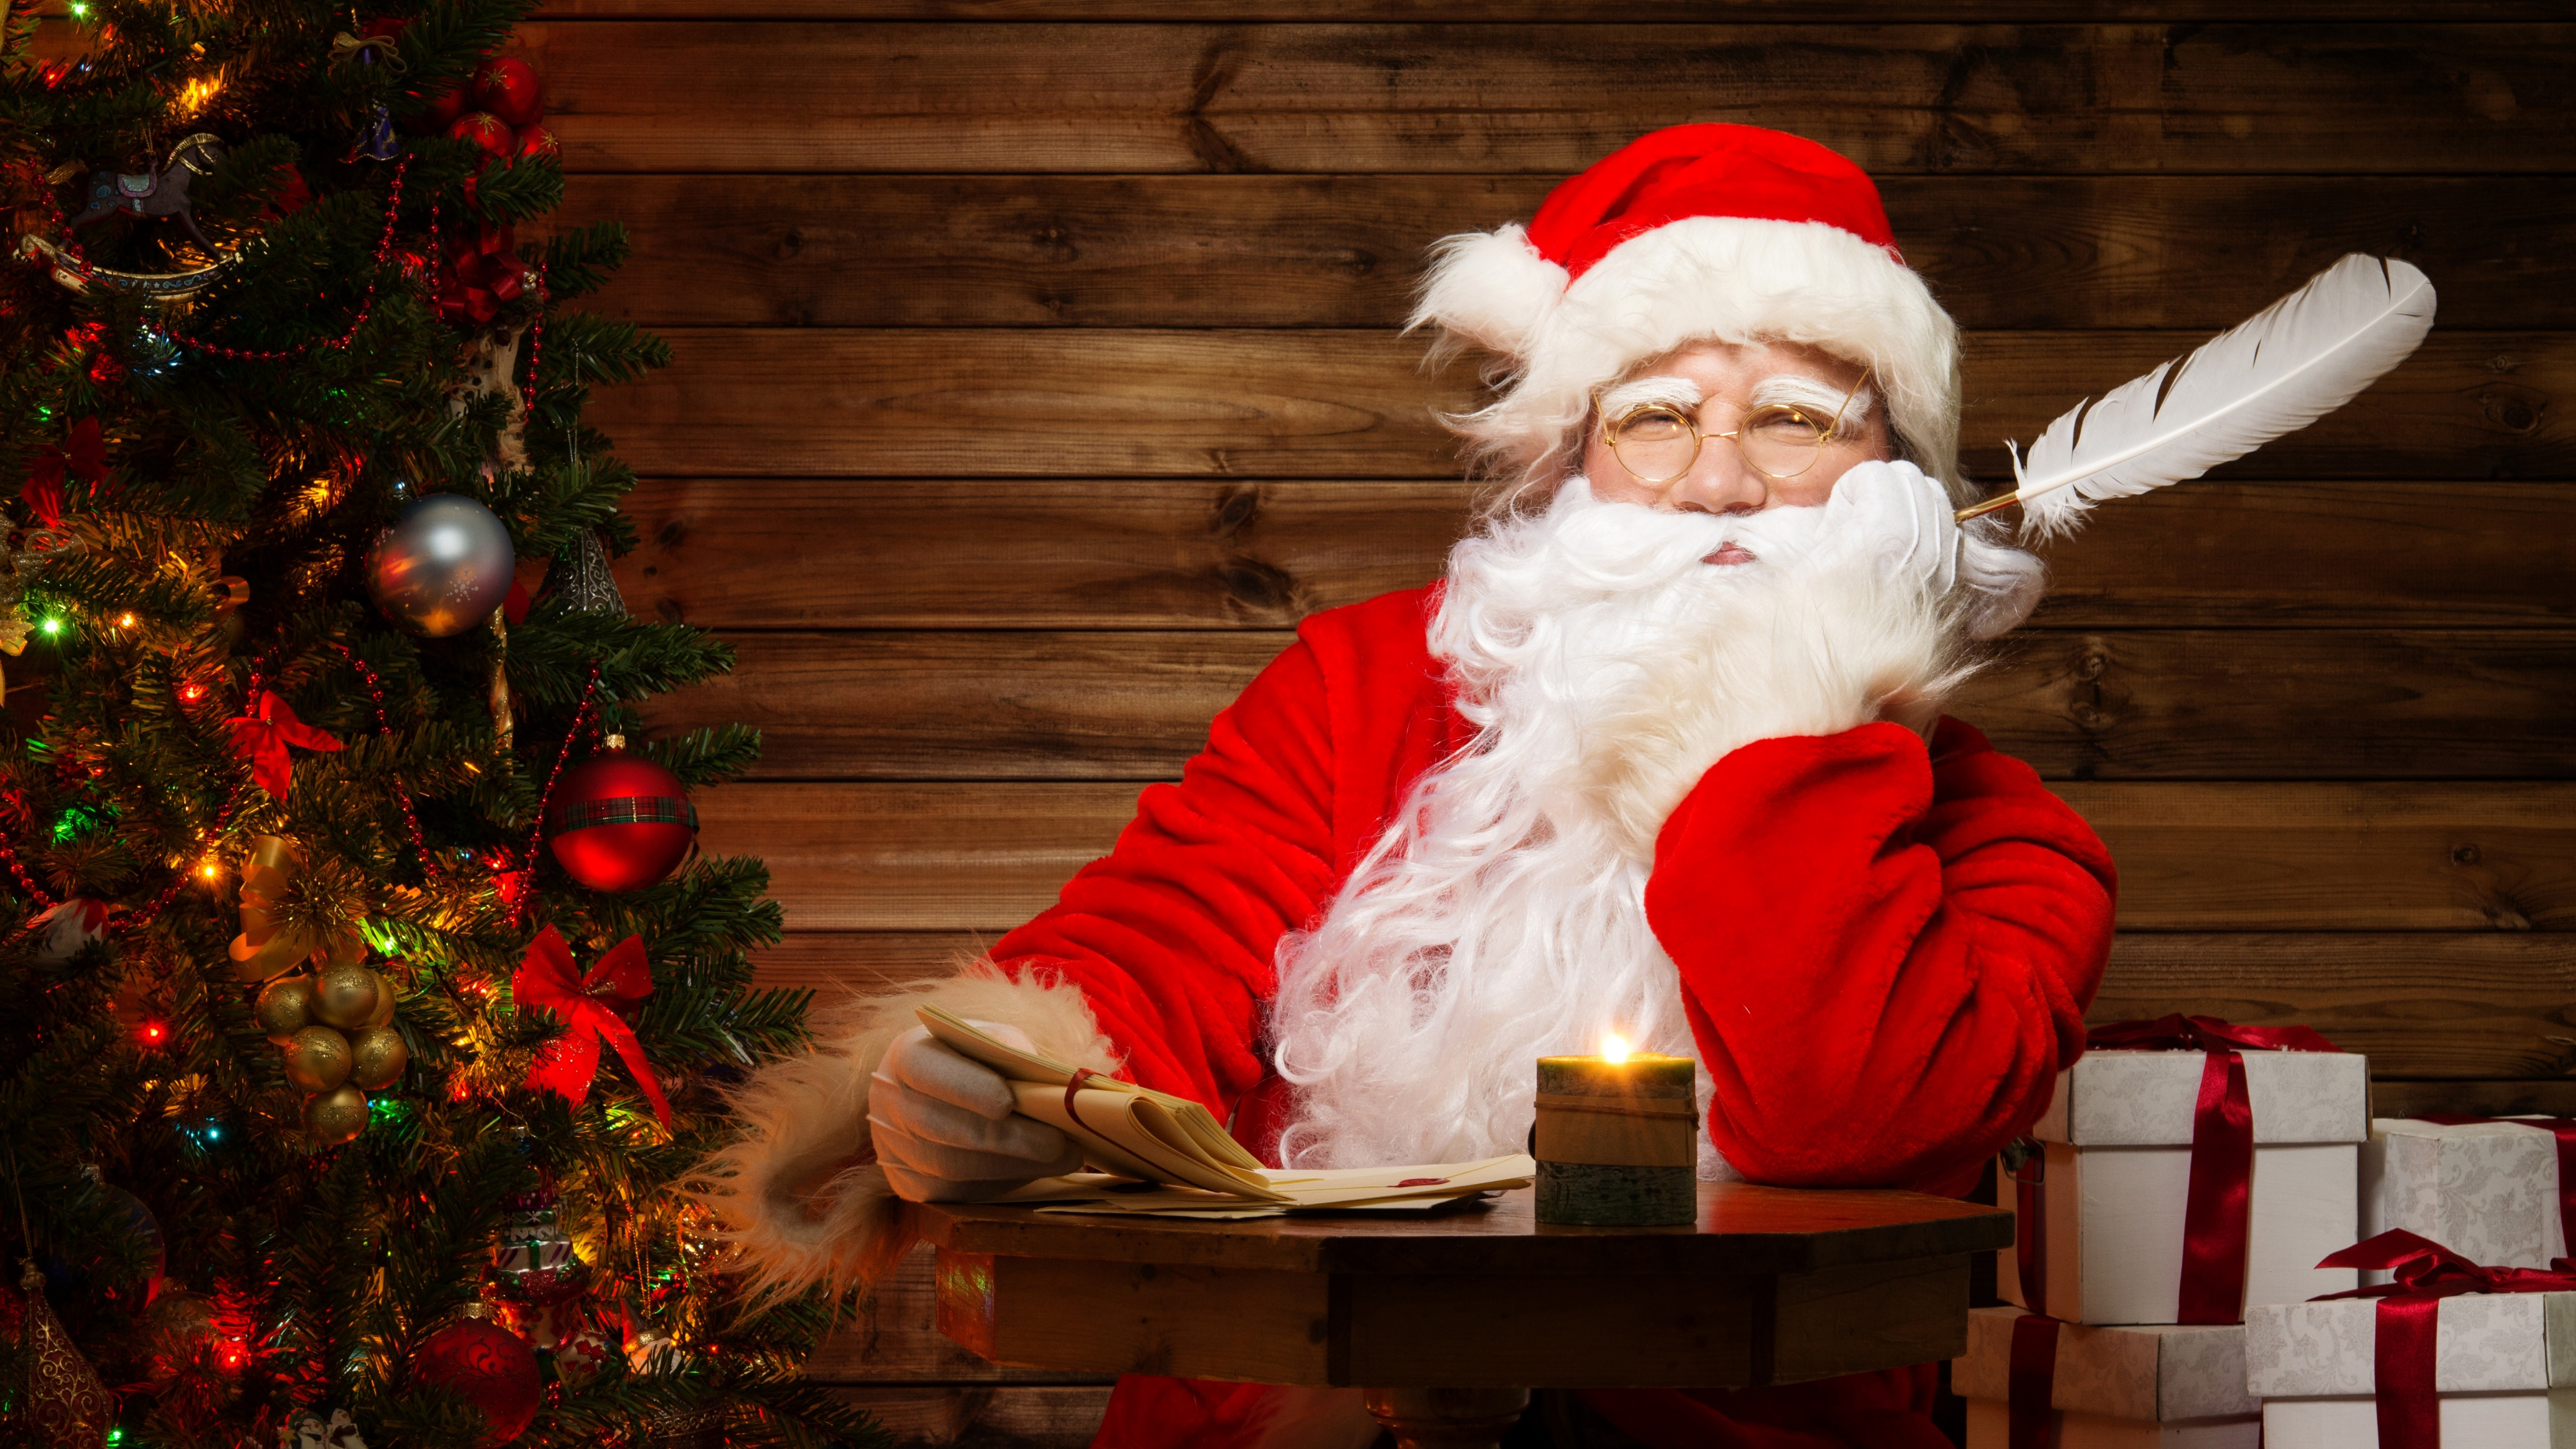 Santa Claus with gifts in his log cabin wallpaper